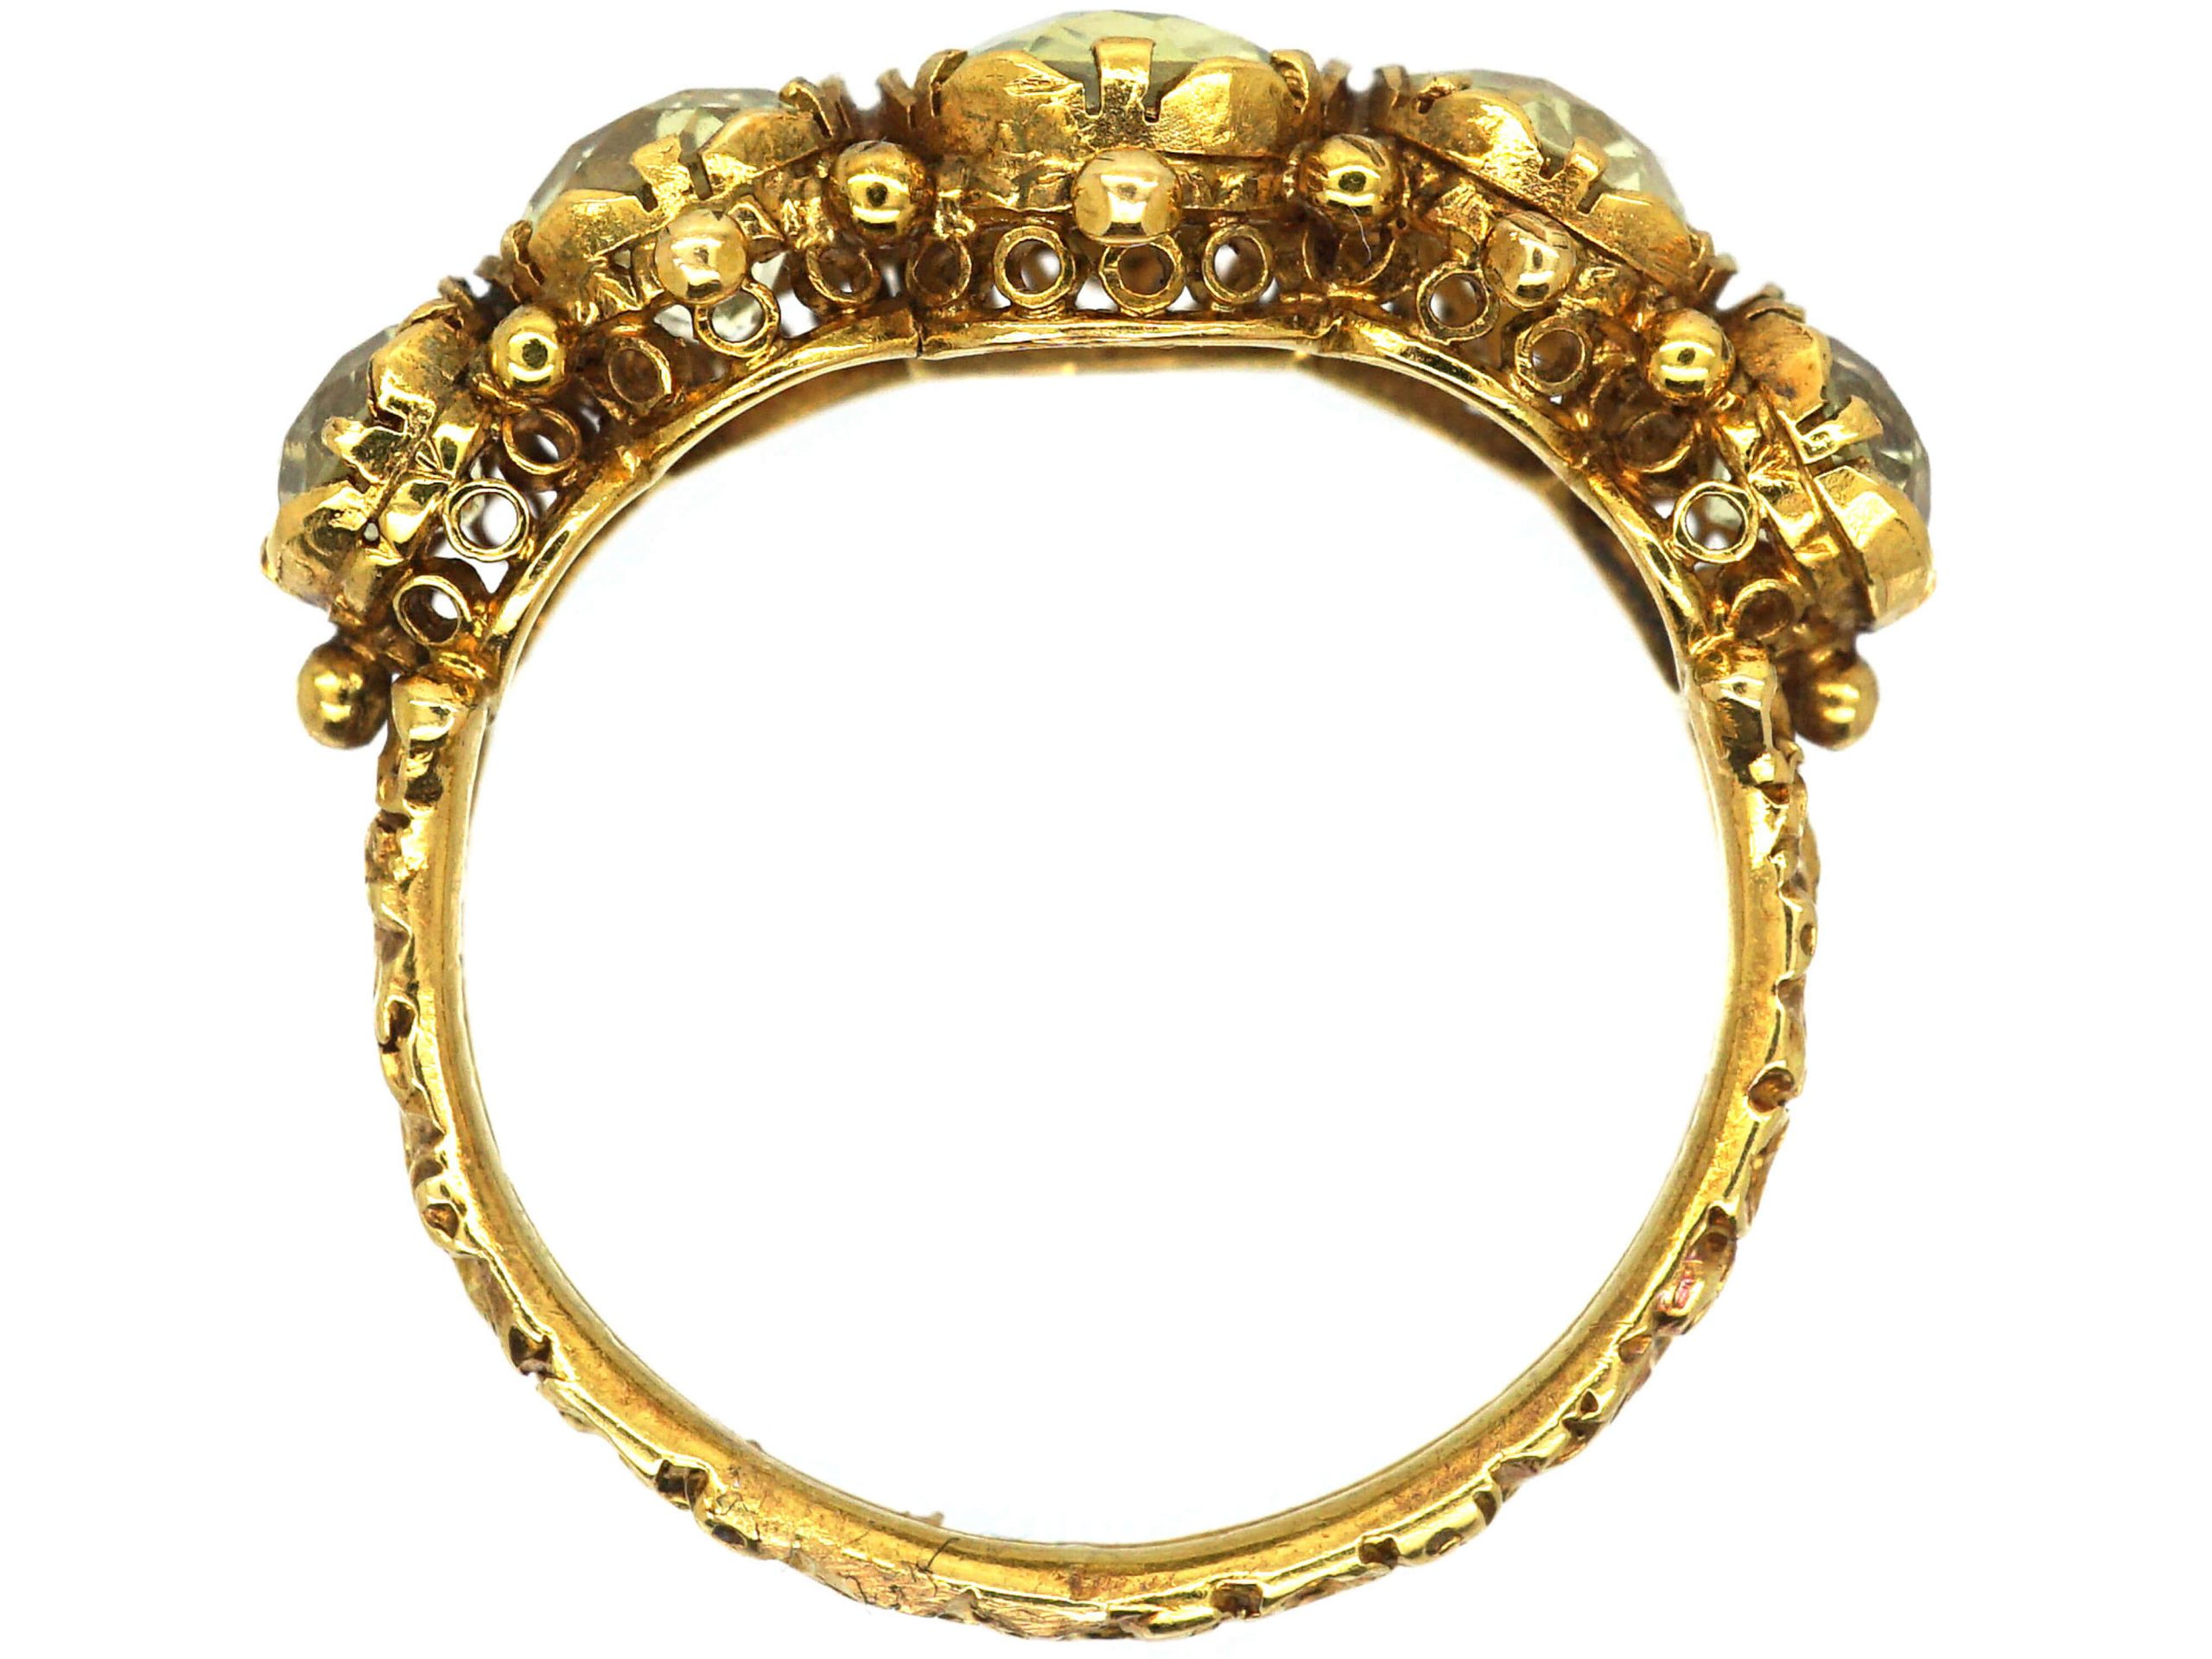 Regency 18ct Gold Ring set with Five Chrysolites